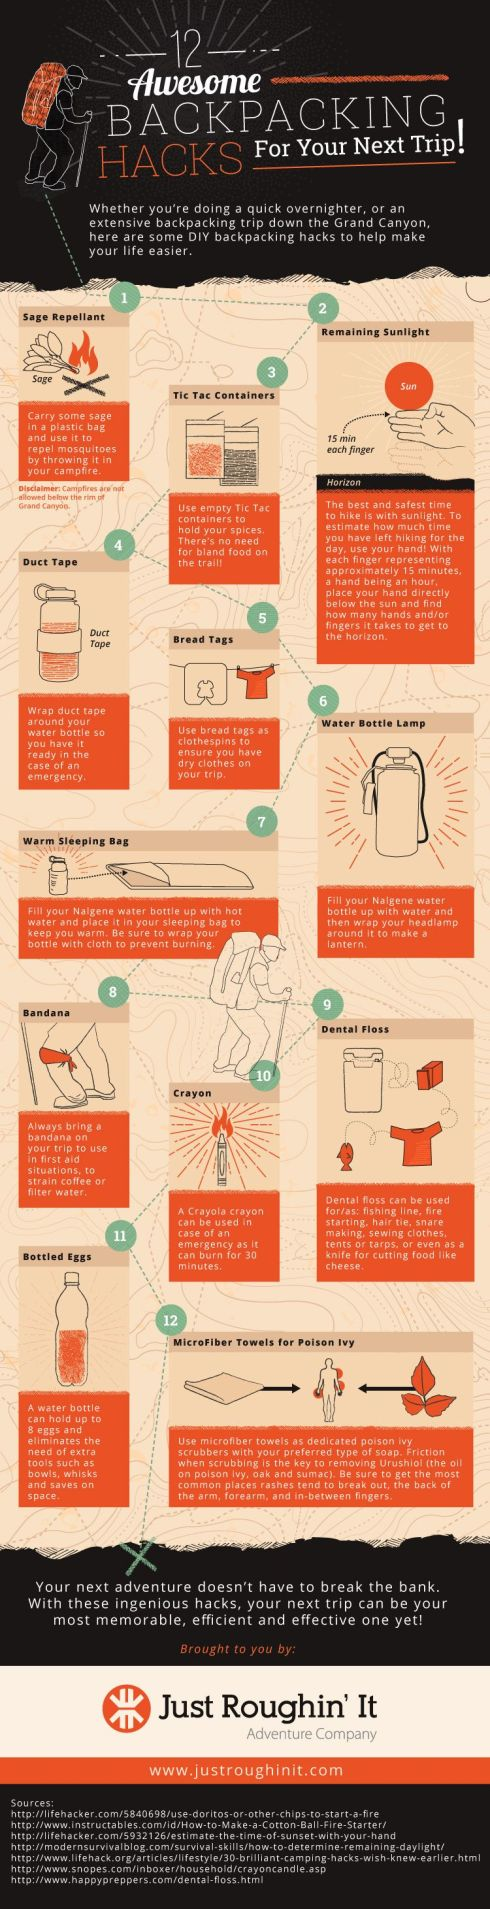 12 Backpacking Hacks for Your Next Trip #infographic